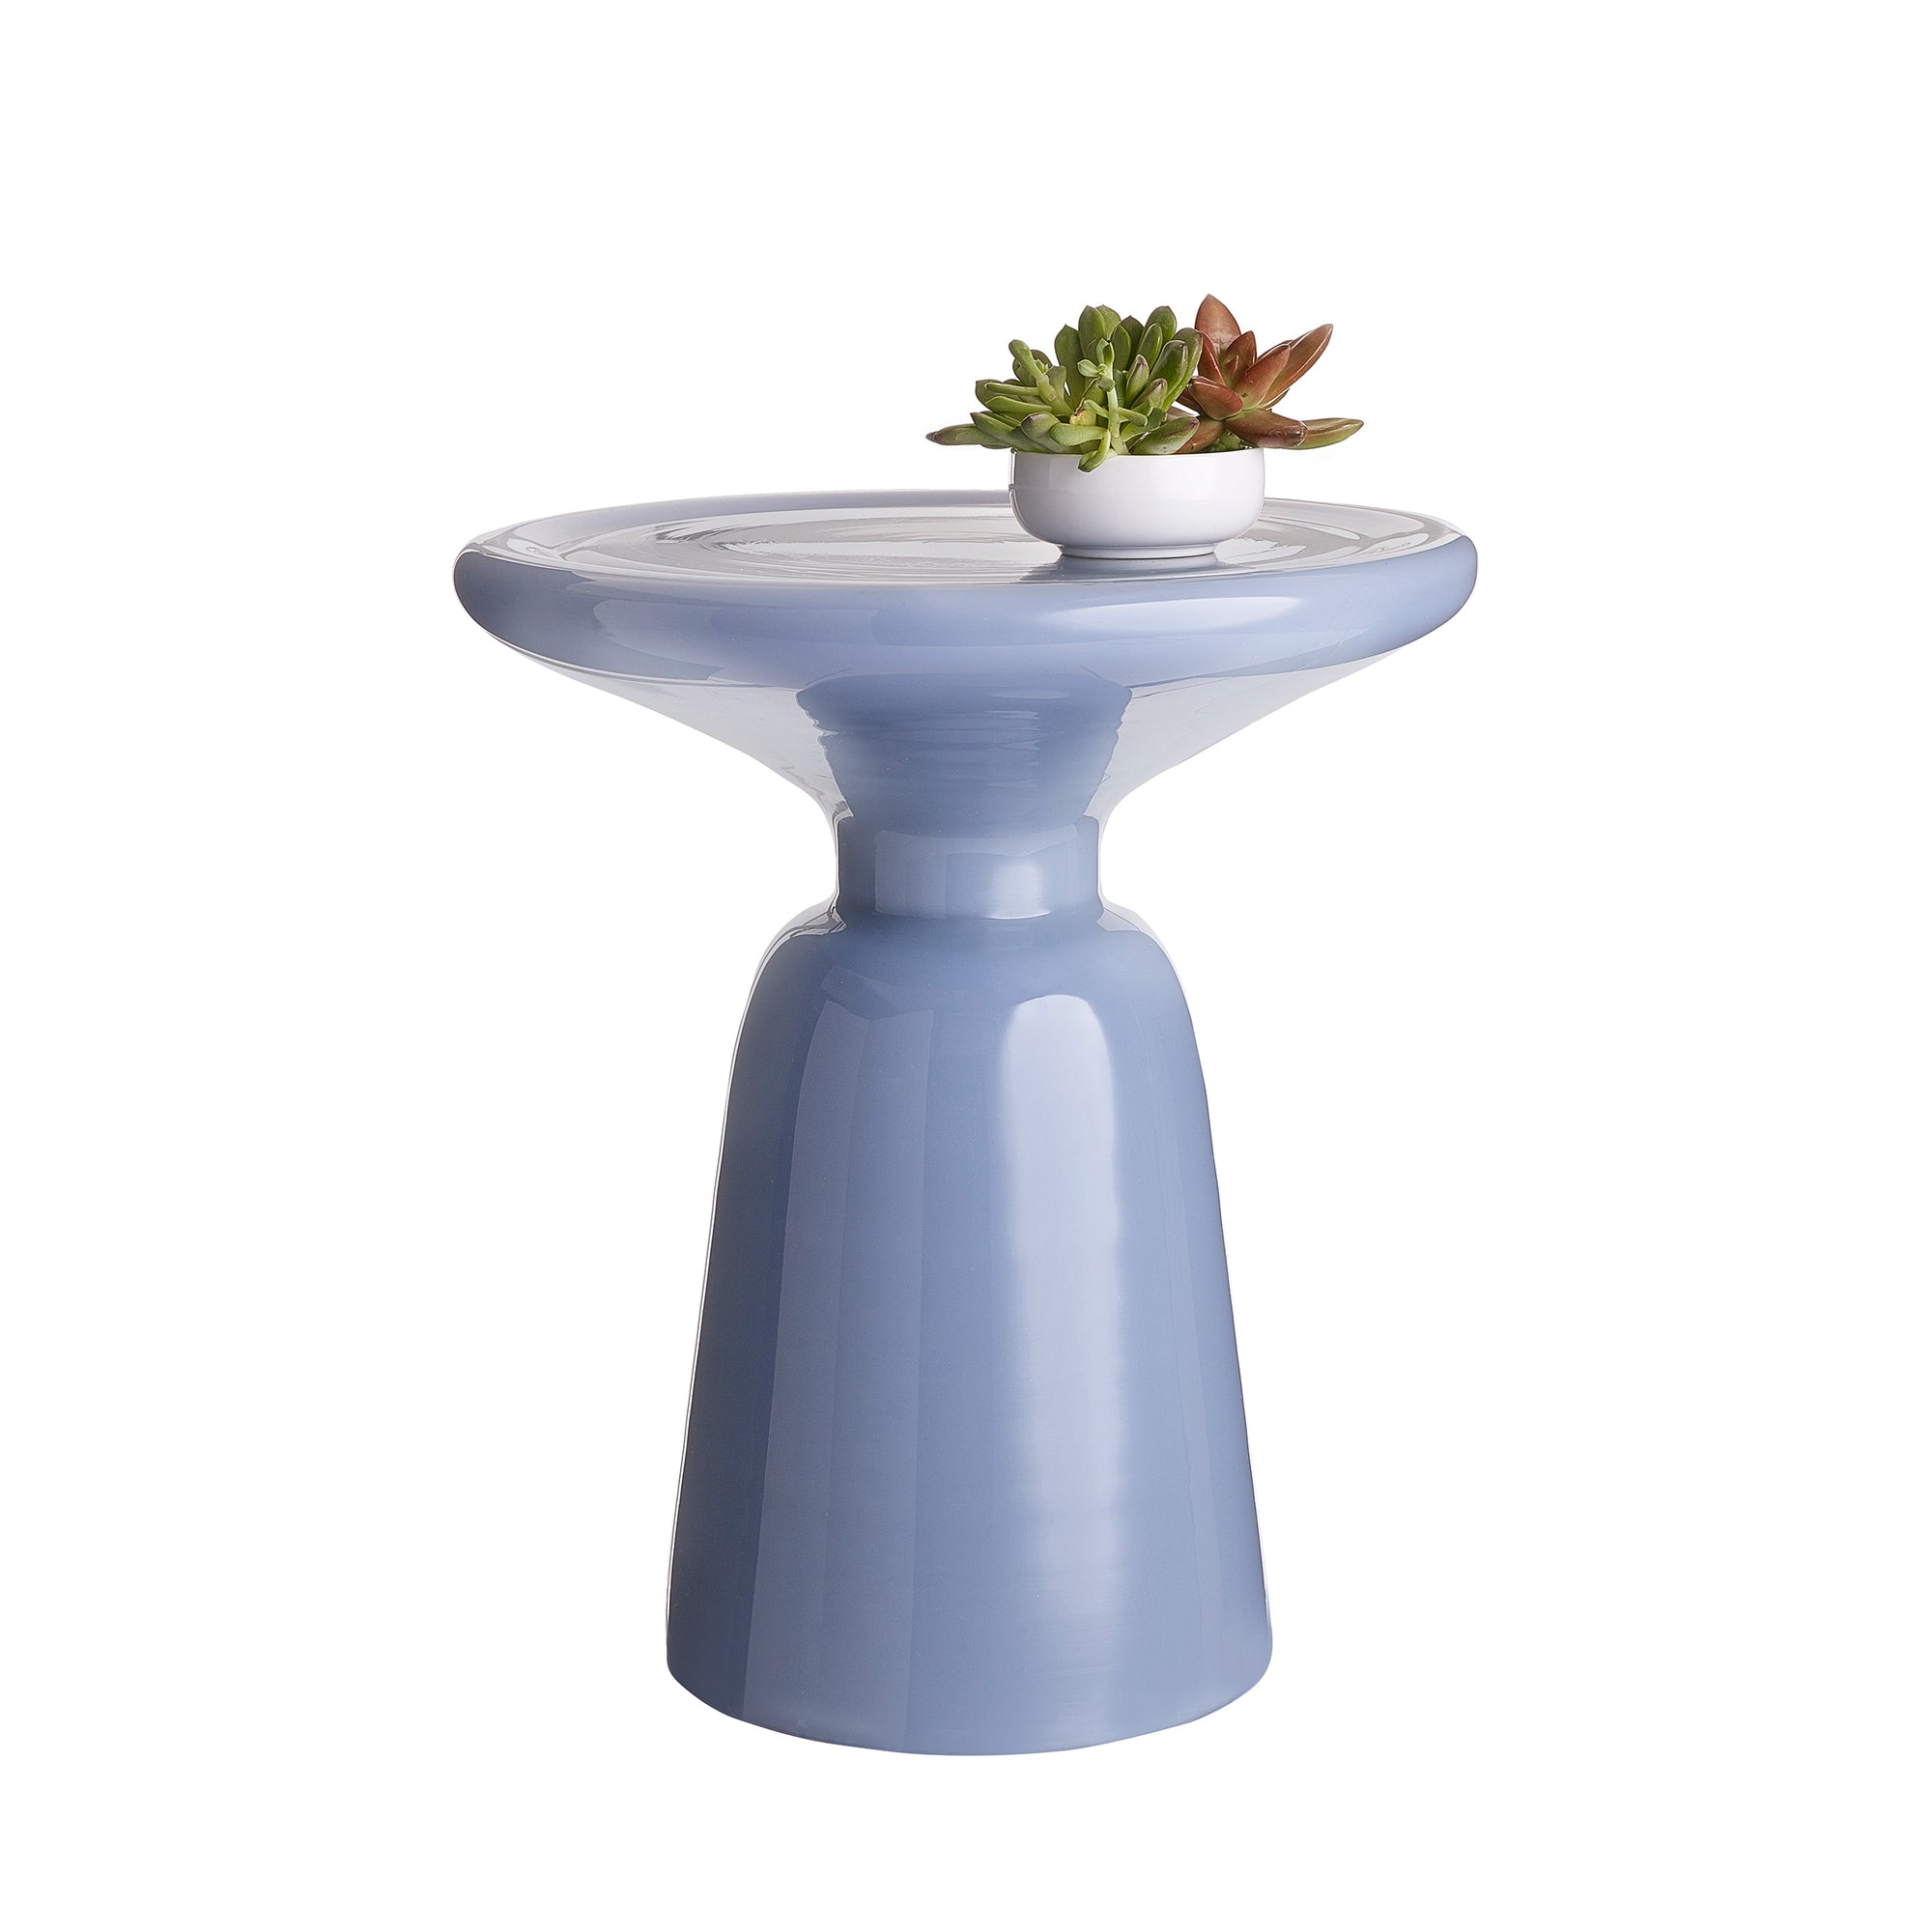 Venezia Side Table in blue and white